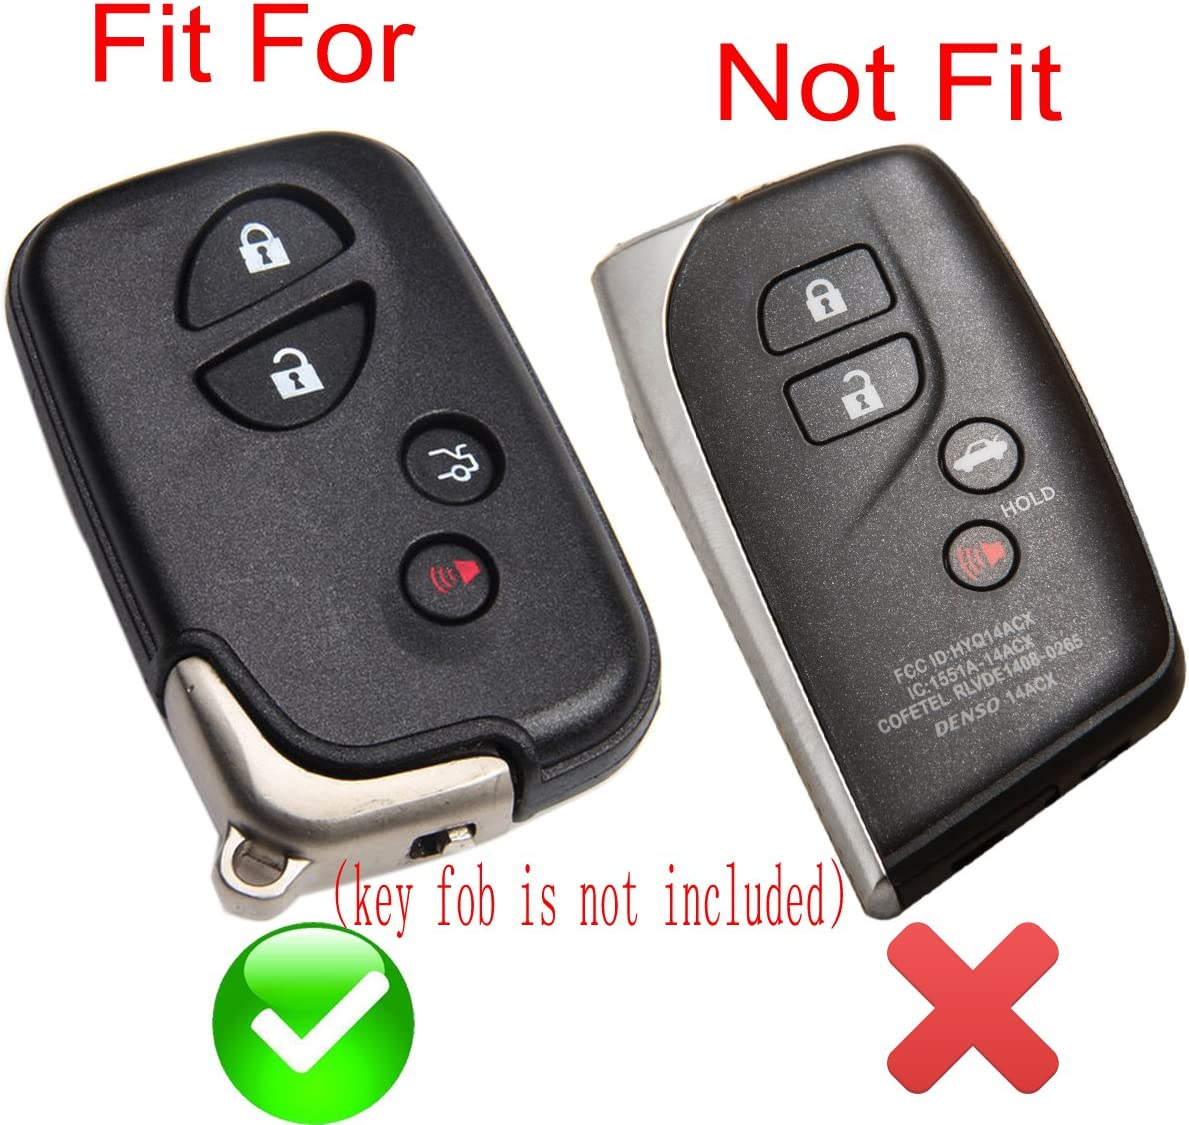 2X Coolbestda Full Covered Key fob Remote Cover Case Protector for Lexus RX350 IS250 GS300 GX460 GS460 IS350 is-C is-F LS600h ES350 GS300